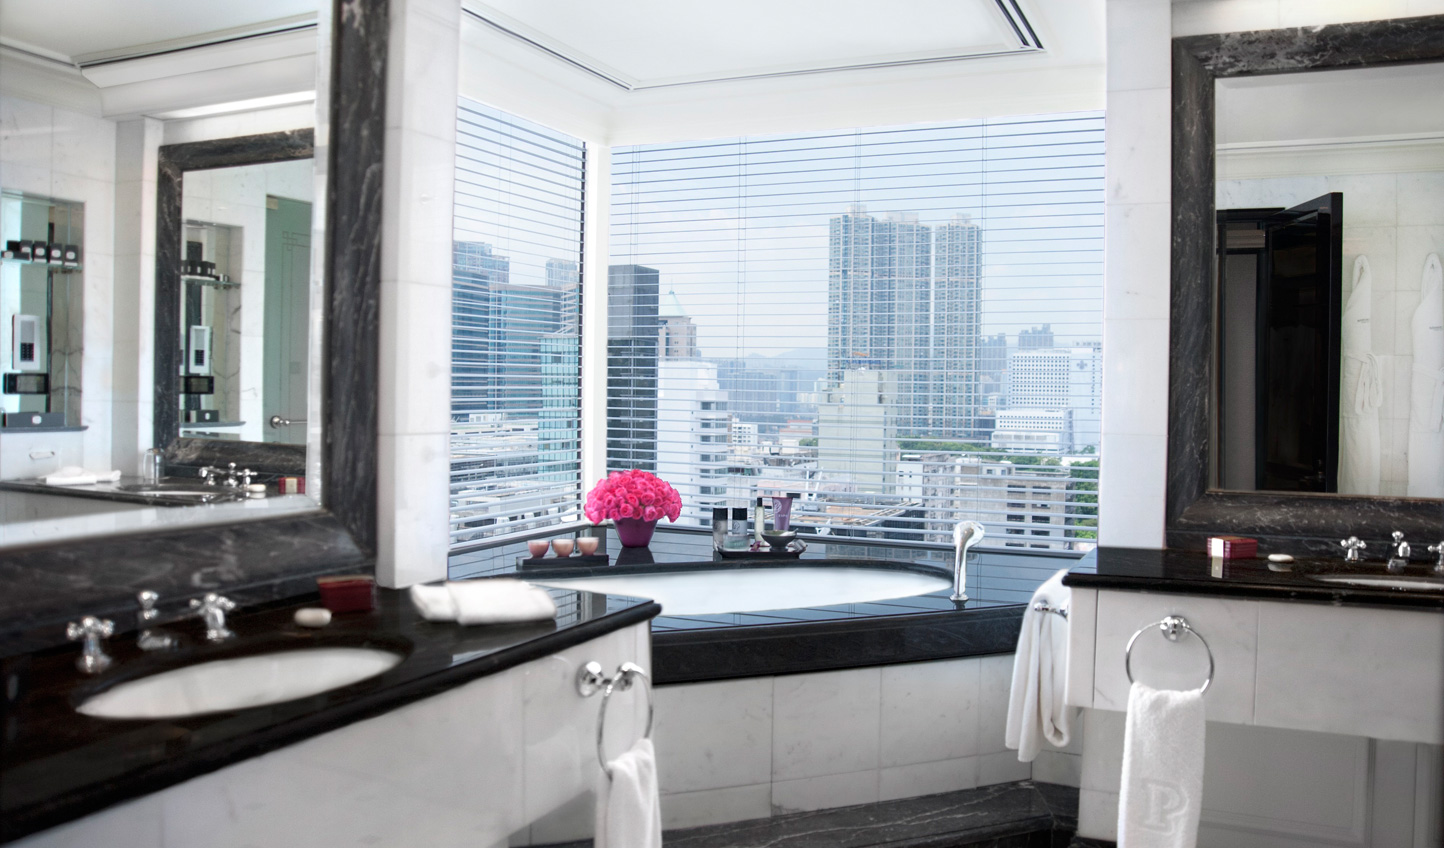 Sink into the bathtub and soak in the view